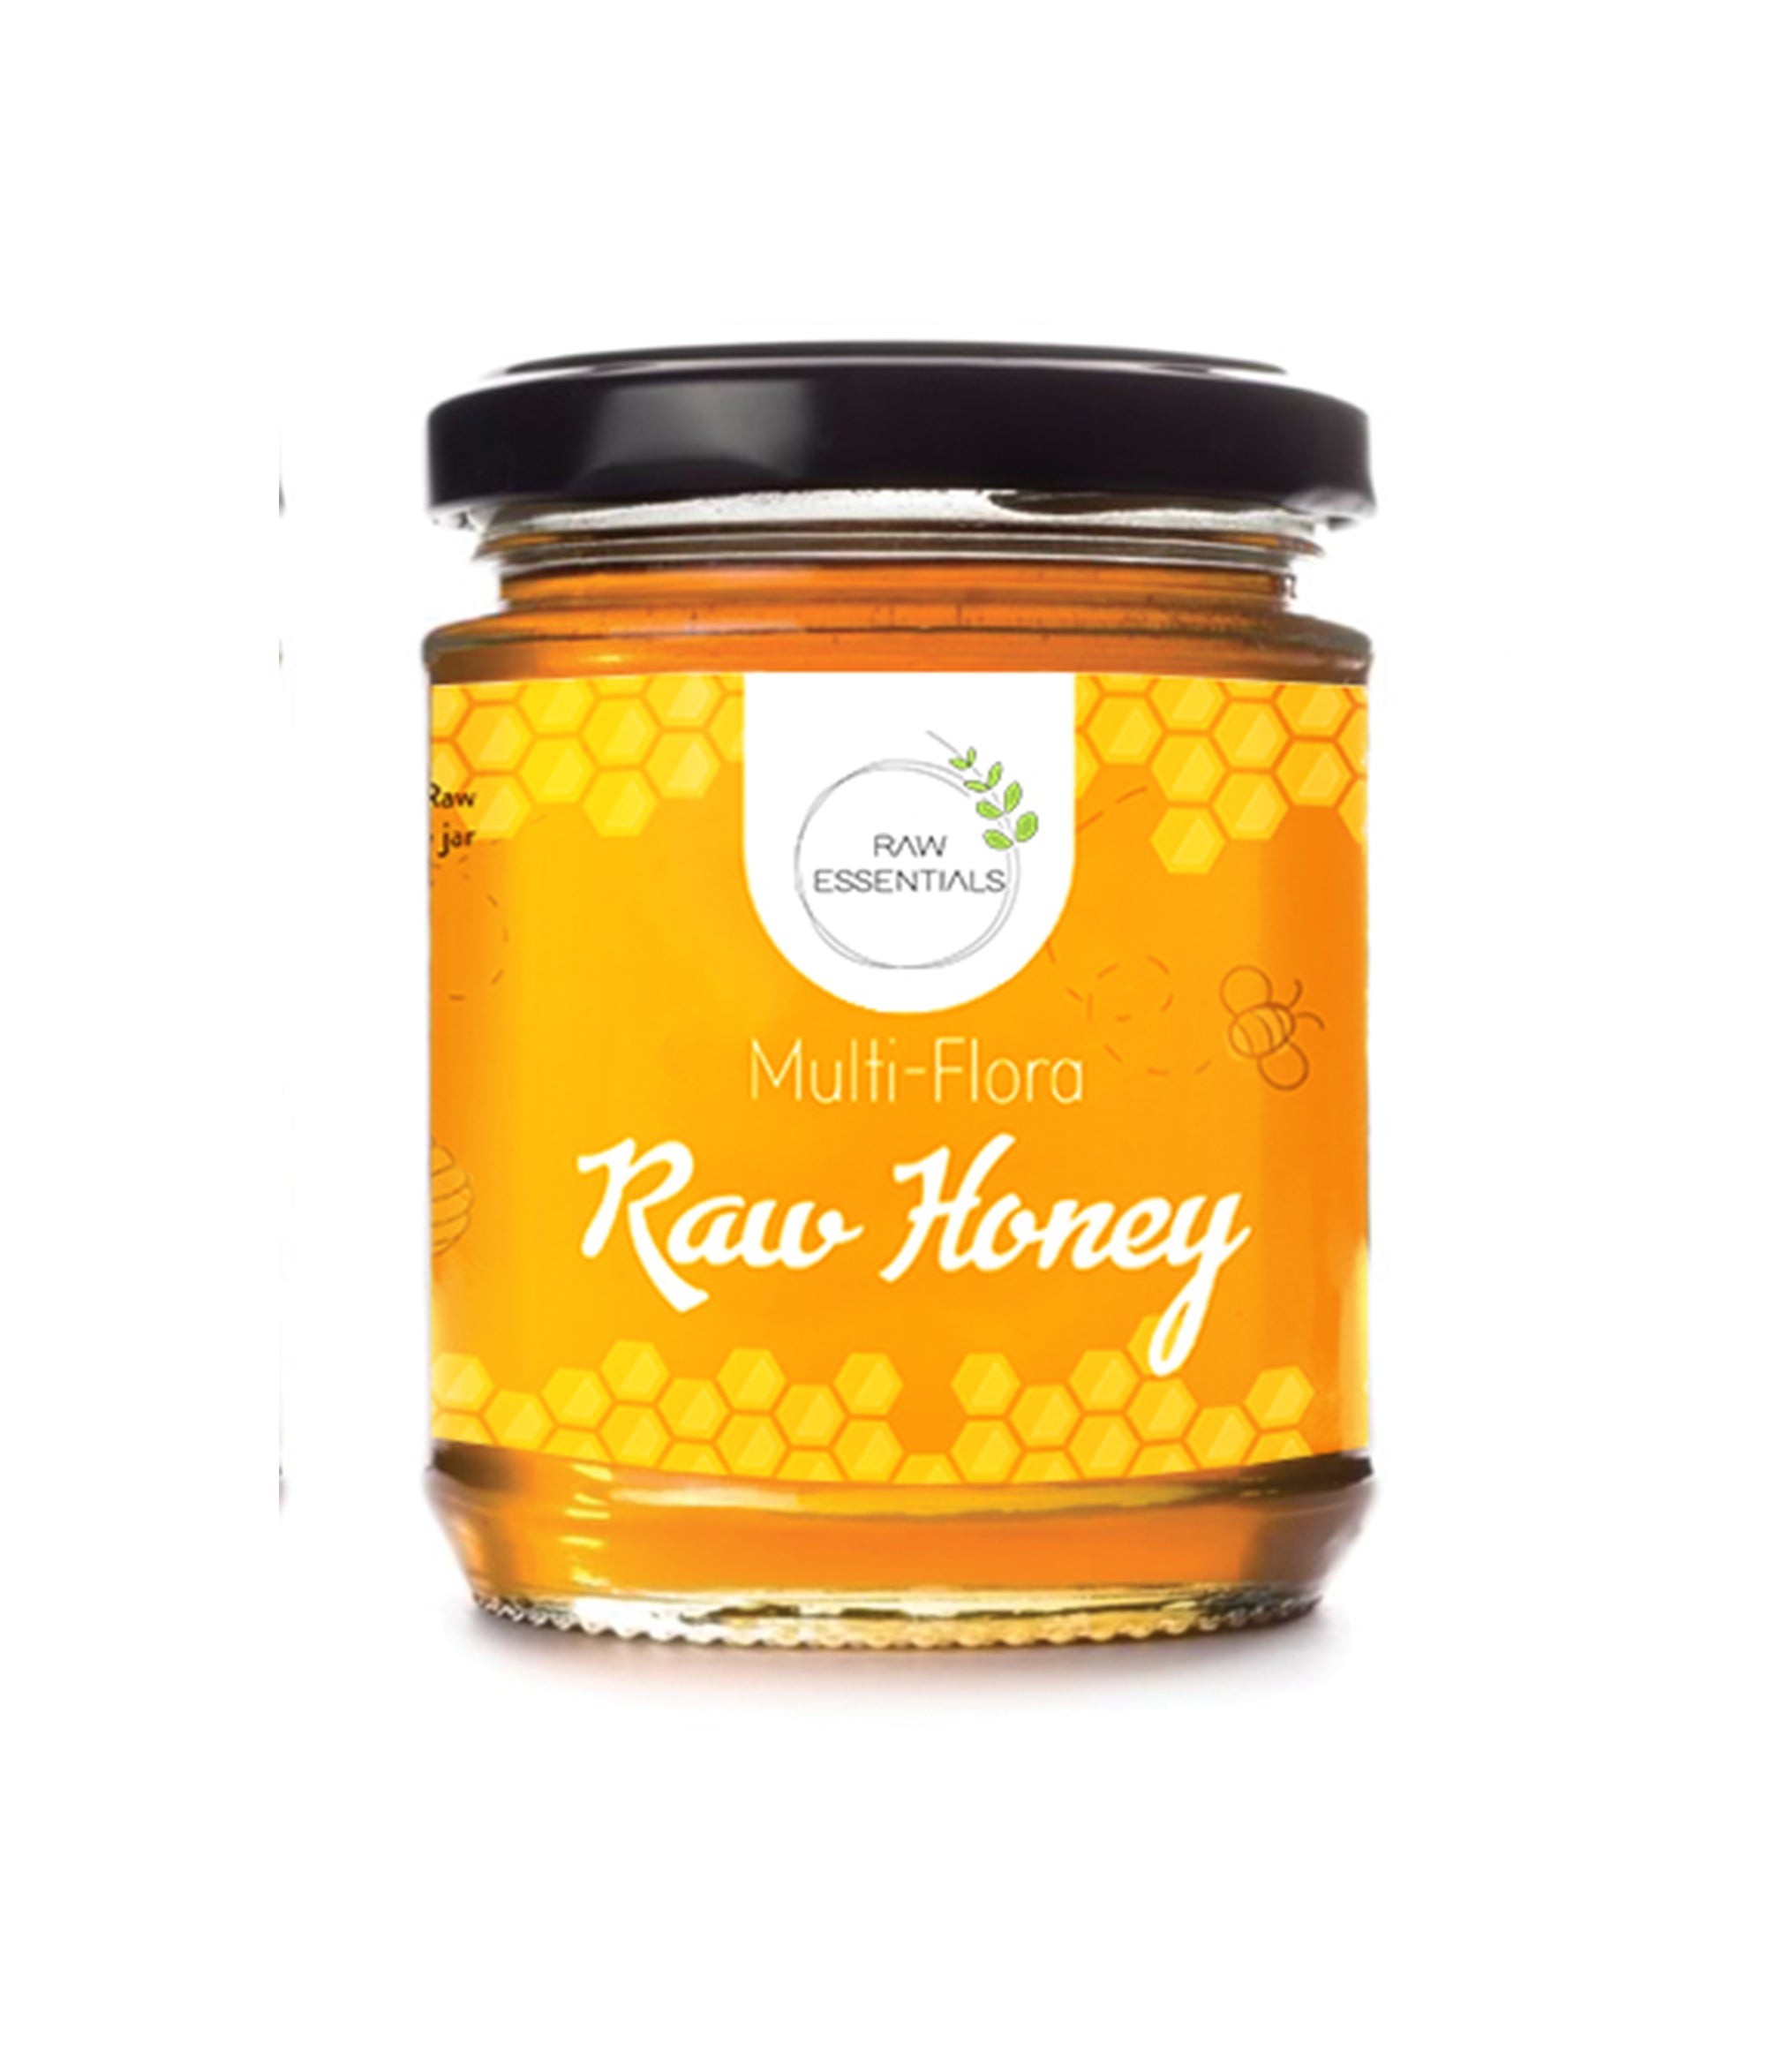 Multi-flora Raw Honey 350g